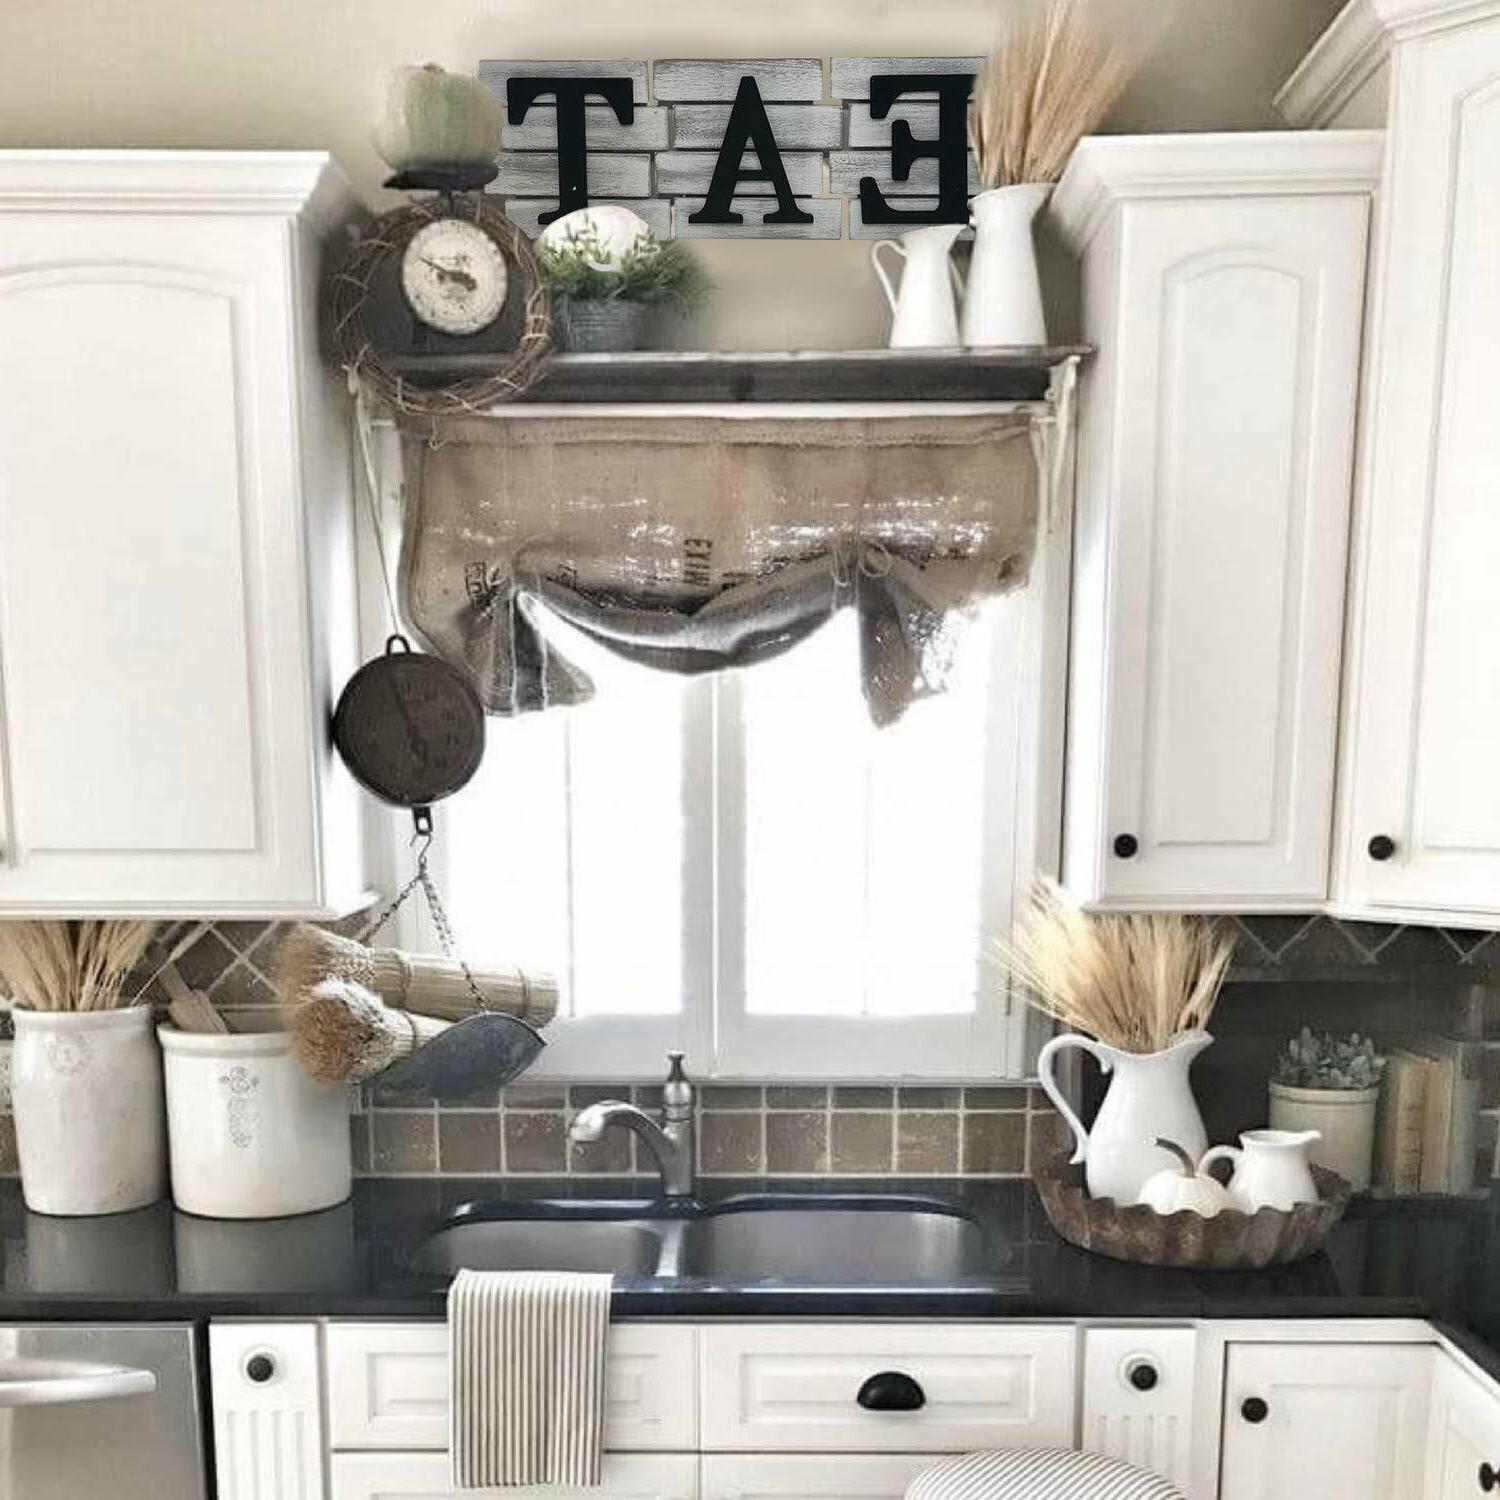 Home Kitchen Country Rustic Farmhouse EAT